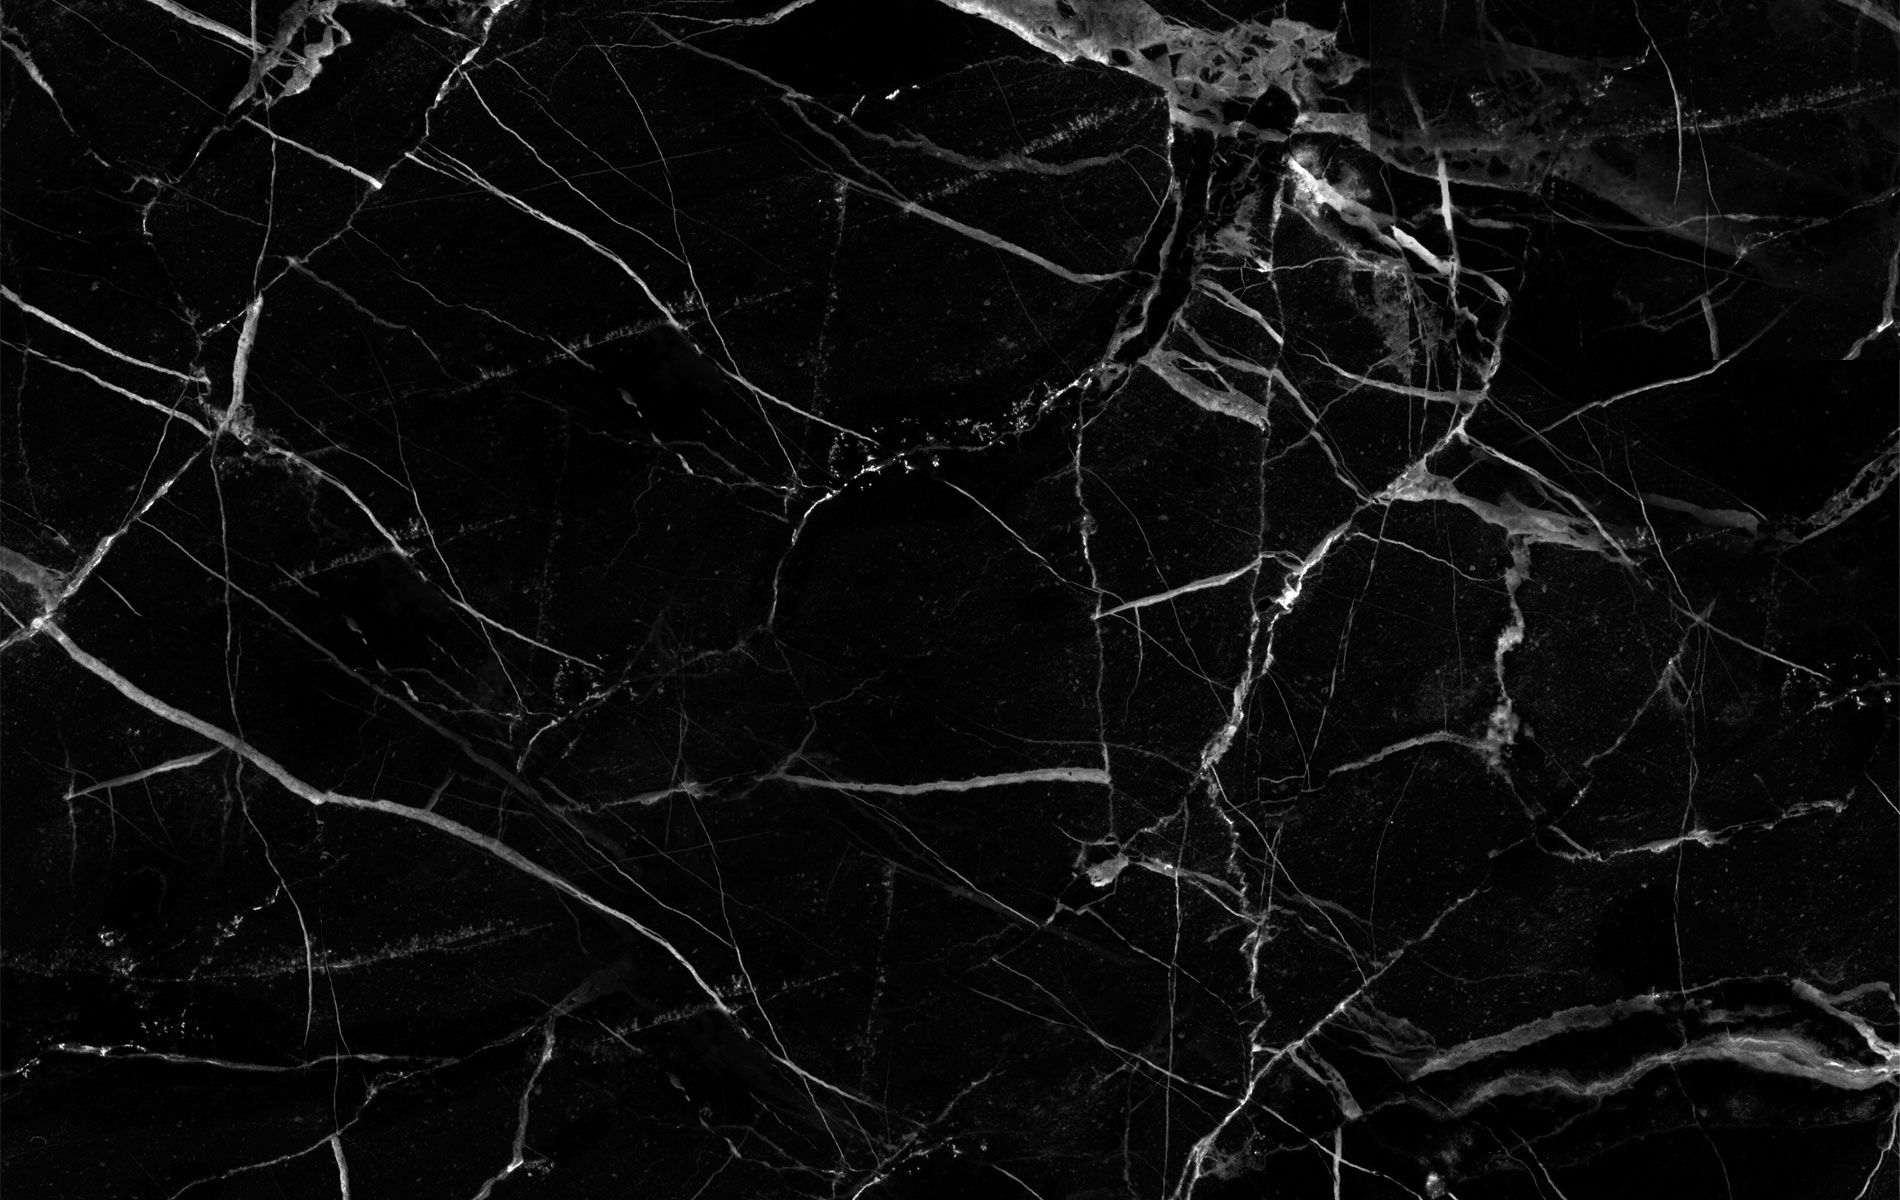 Dark Black Marble Hd Photos Marble Desktop Wallpaper Desktop Wallpaper Black Minimalist Desktop Wallpaper